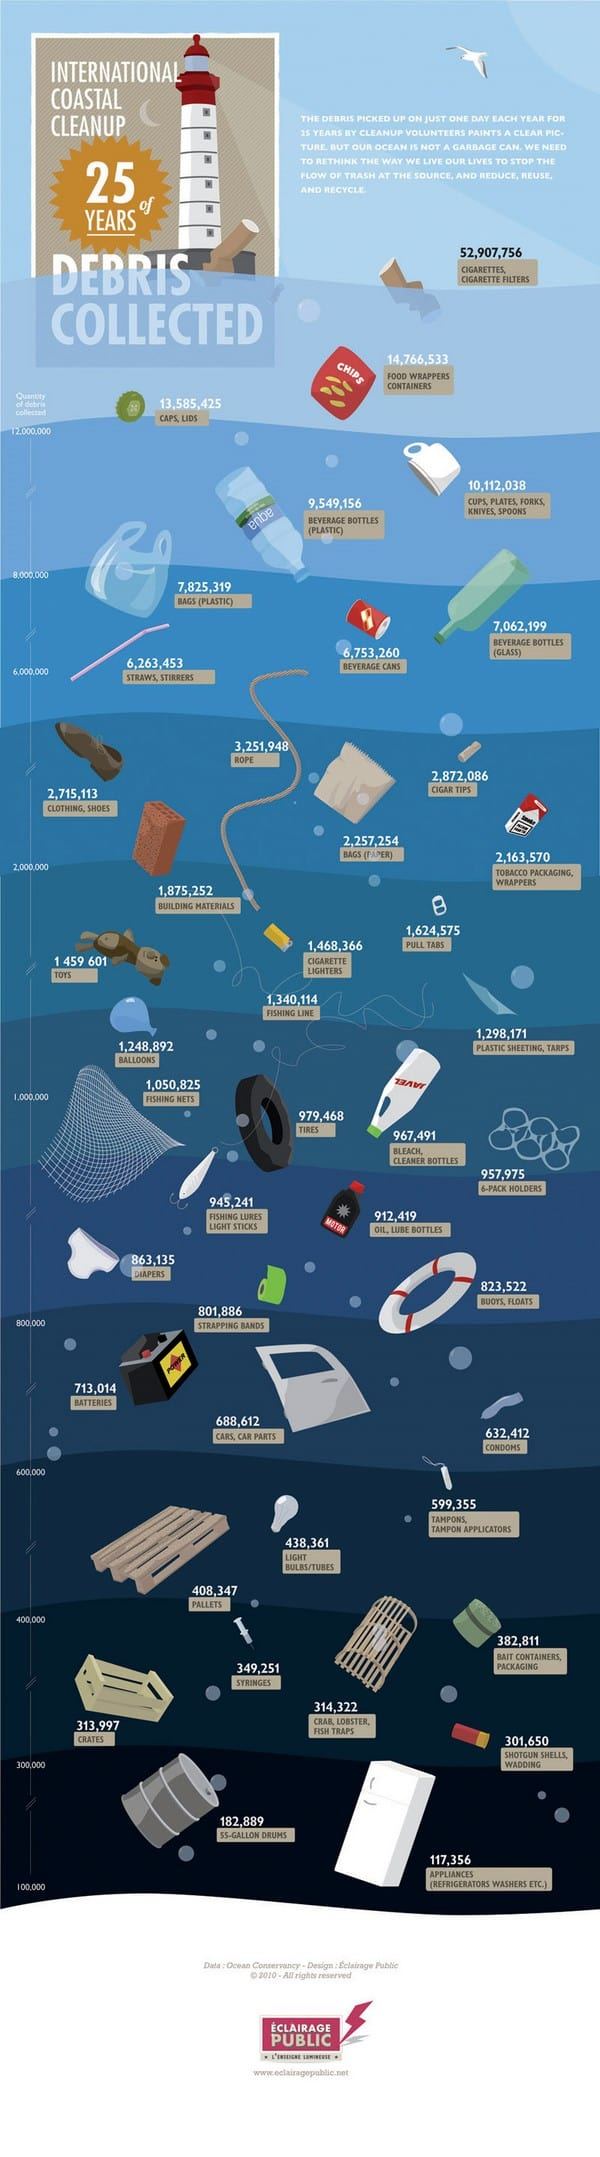 International Coastal Cleanup 25 years of Debris Collected Infographic